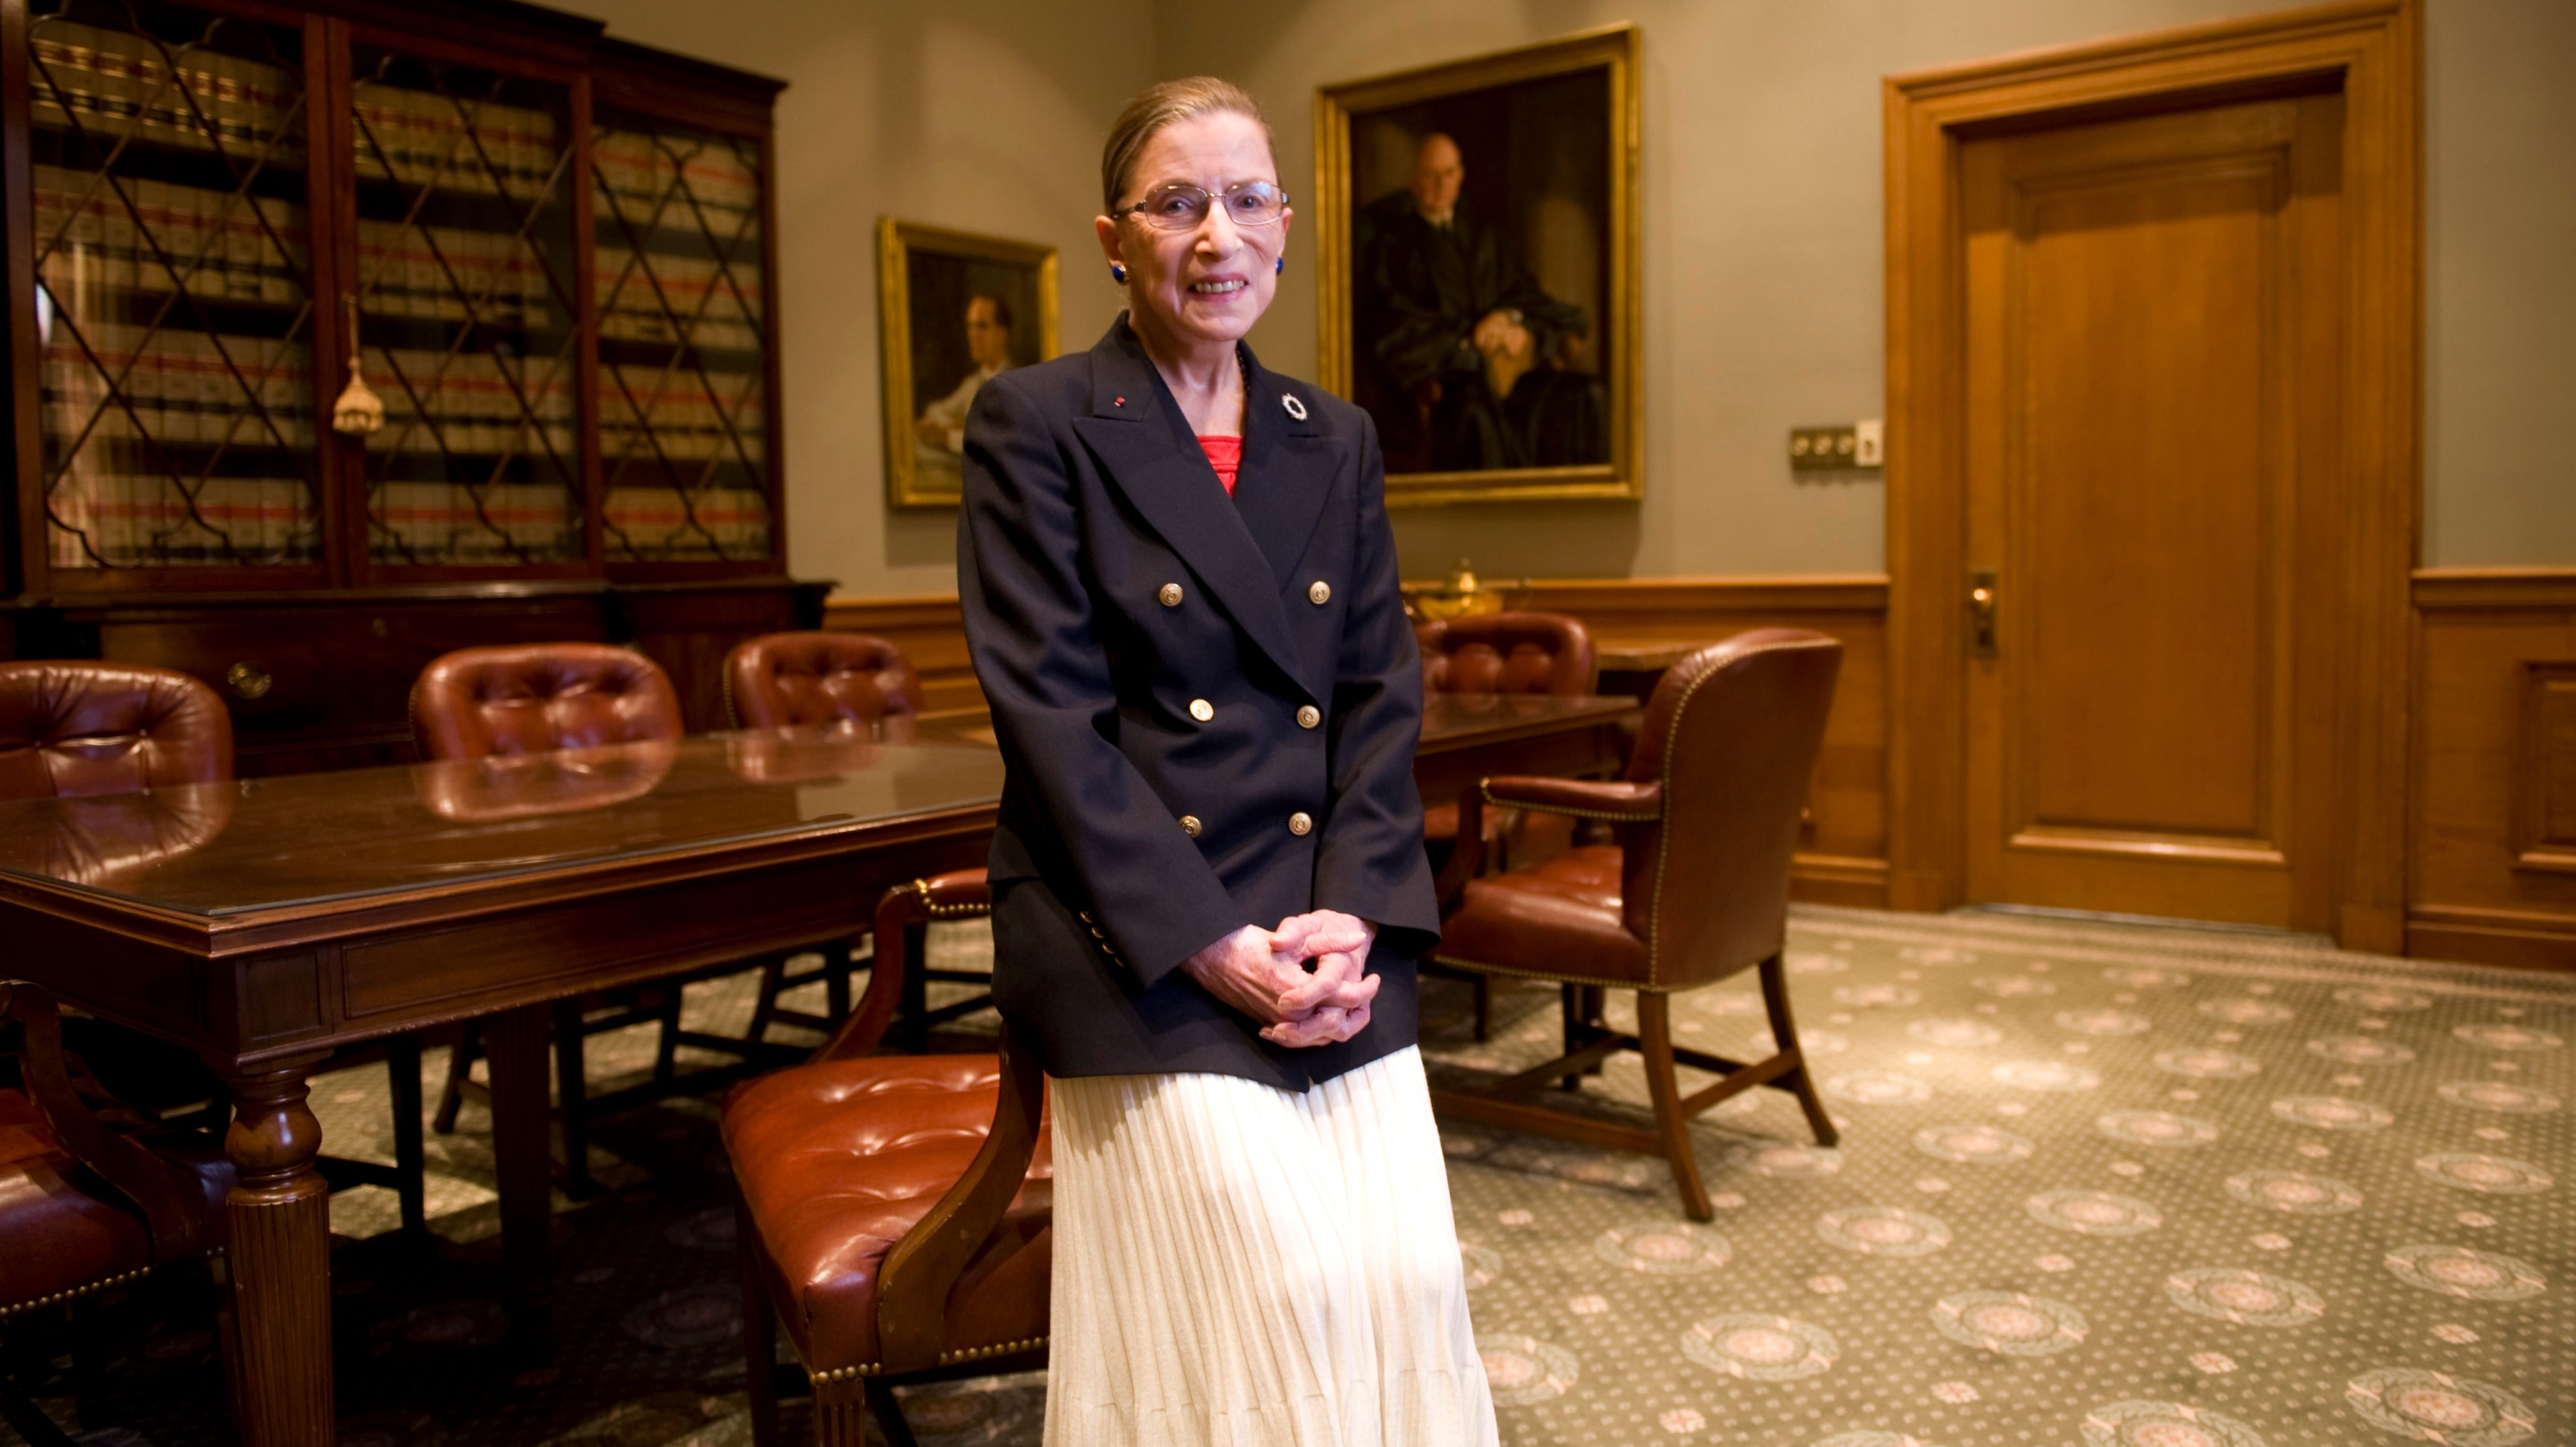 Ruth Bader Ginsburg: Key moments from her life and career